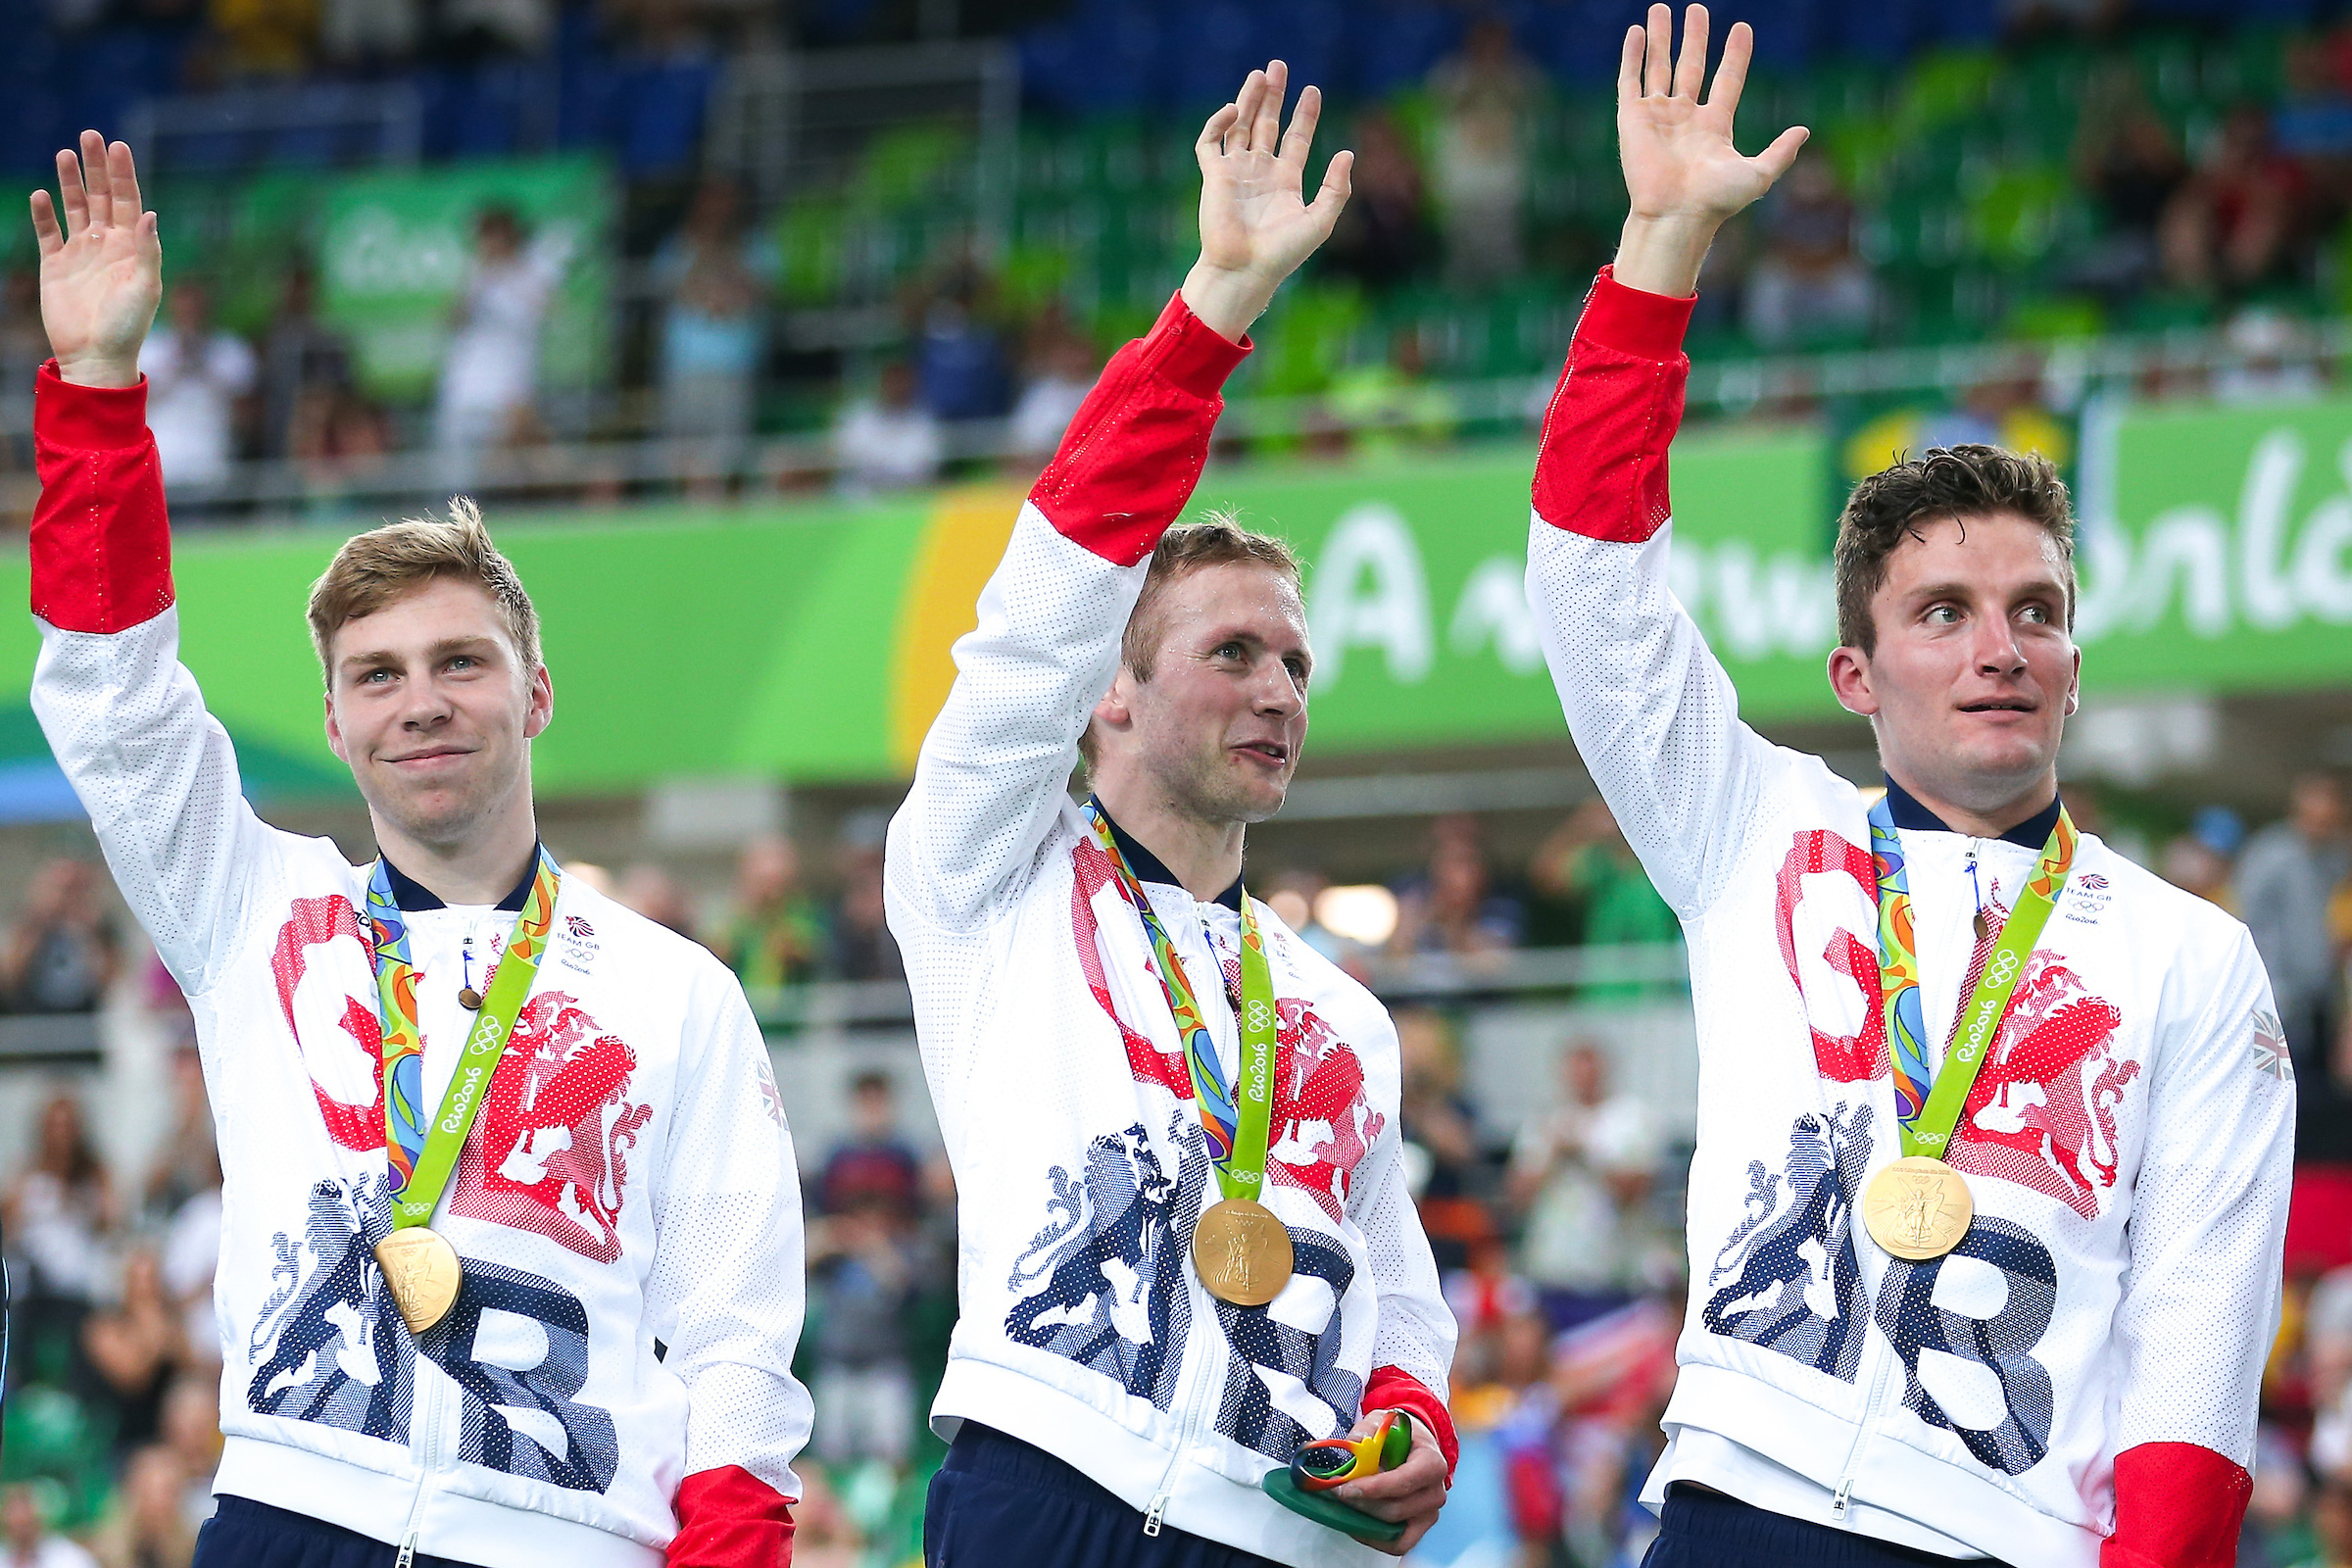 Left to right. Philip Hindes, Jason Kenny and Callum Skinner.